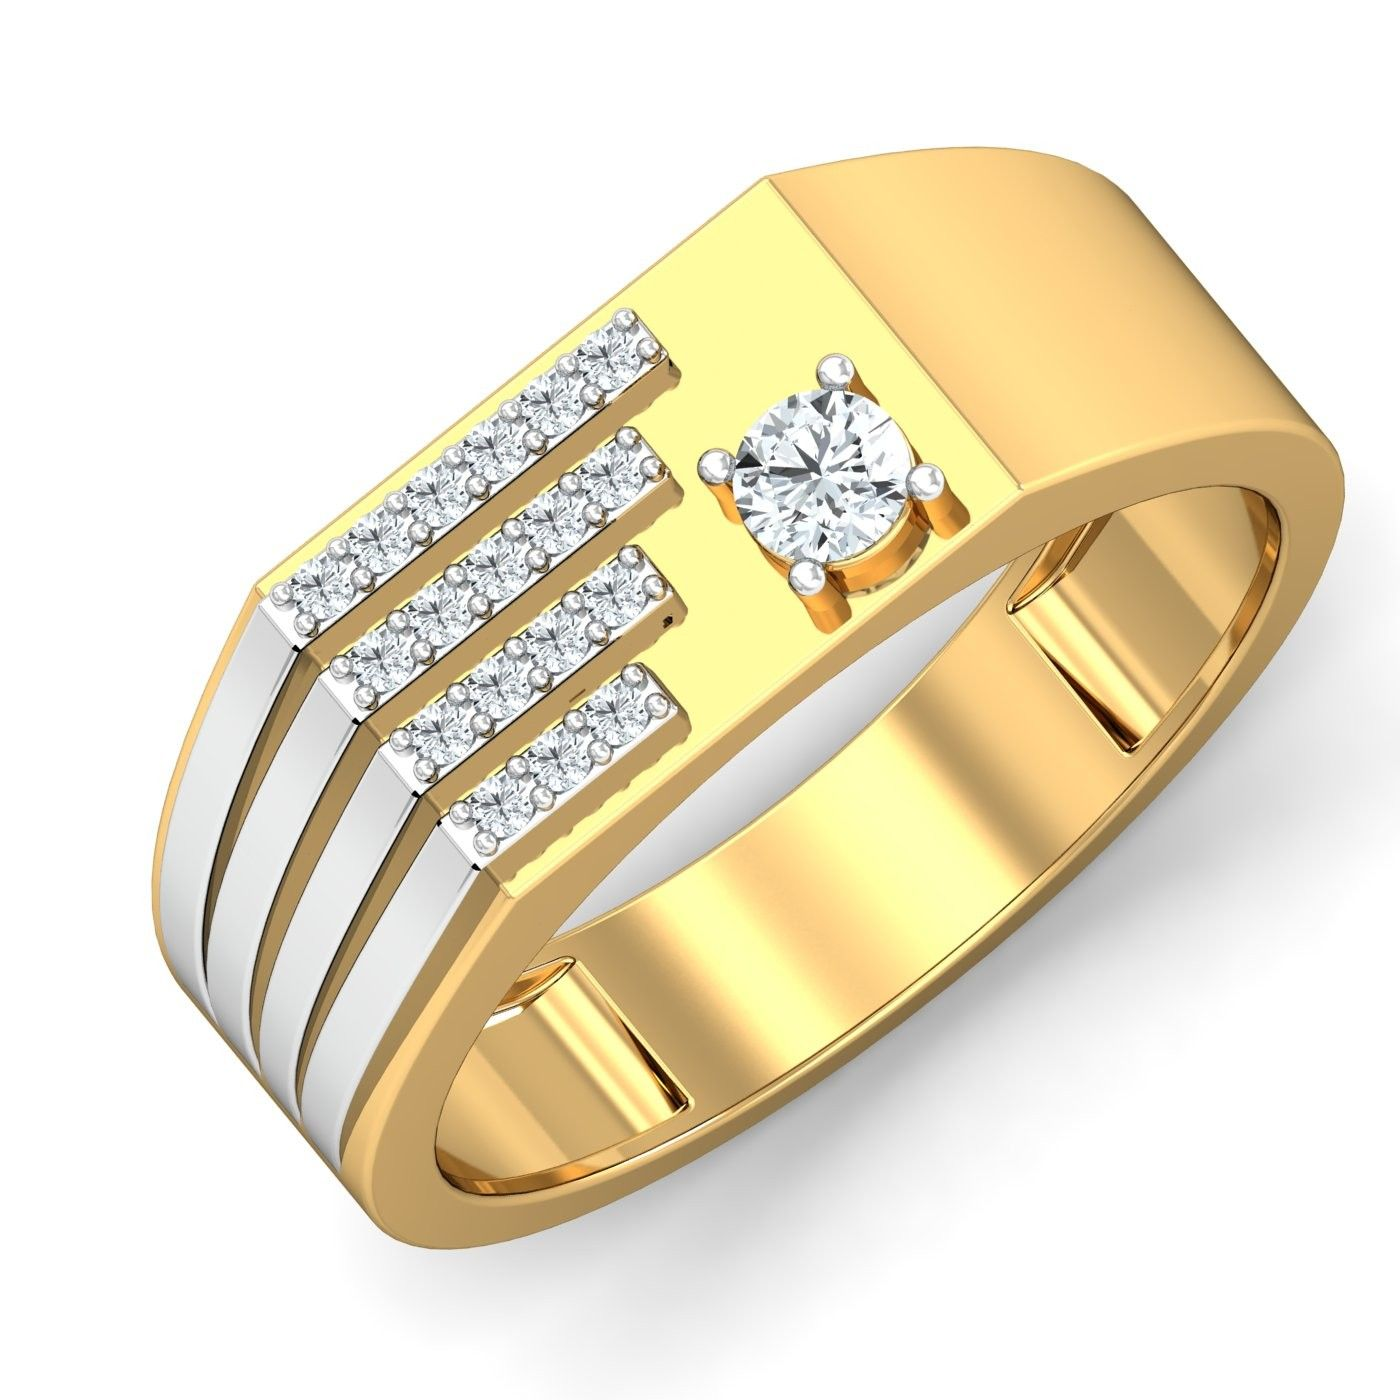 rings jewellery store in gold made india plated k low prices buy cubic online amazon rhodium dp v with zirconia lock and couple jewels love at